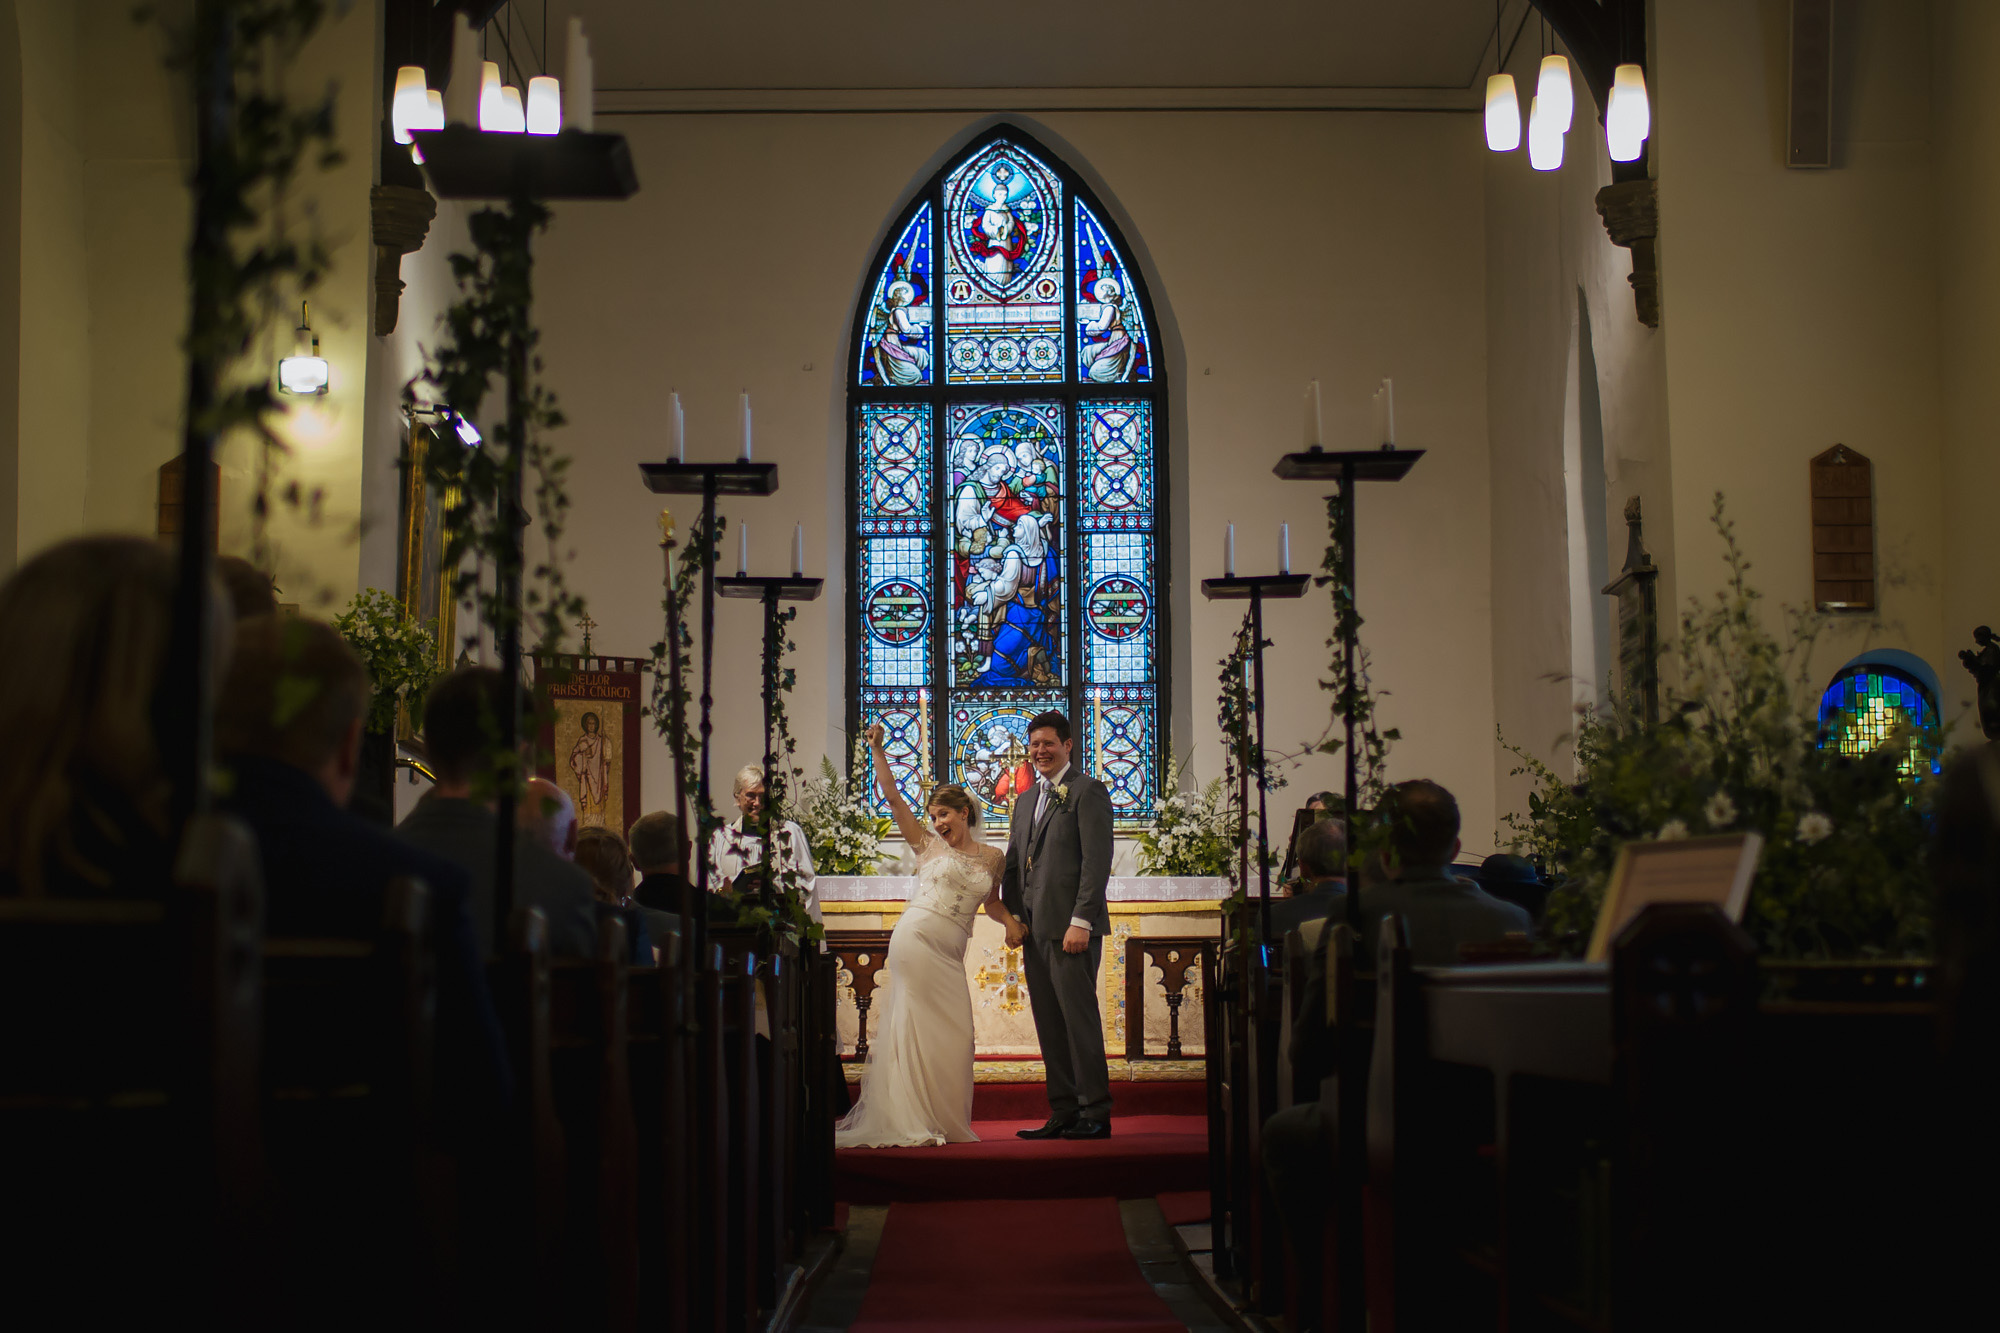 Bride and groom happy at their church ceremony in front of a stained glass window